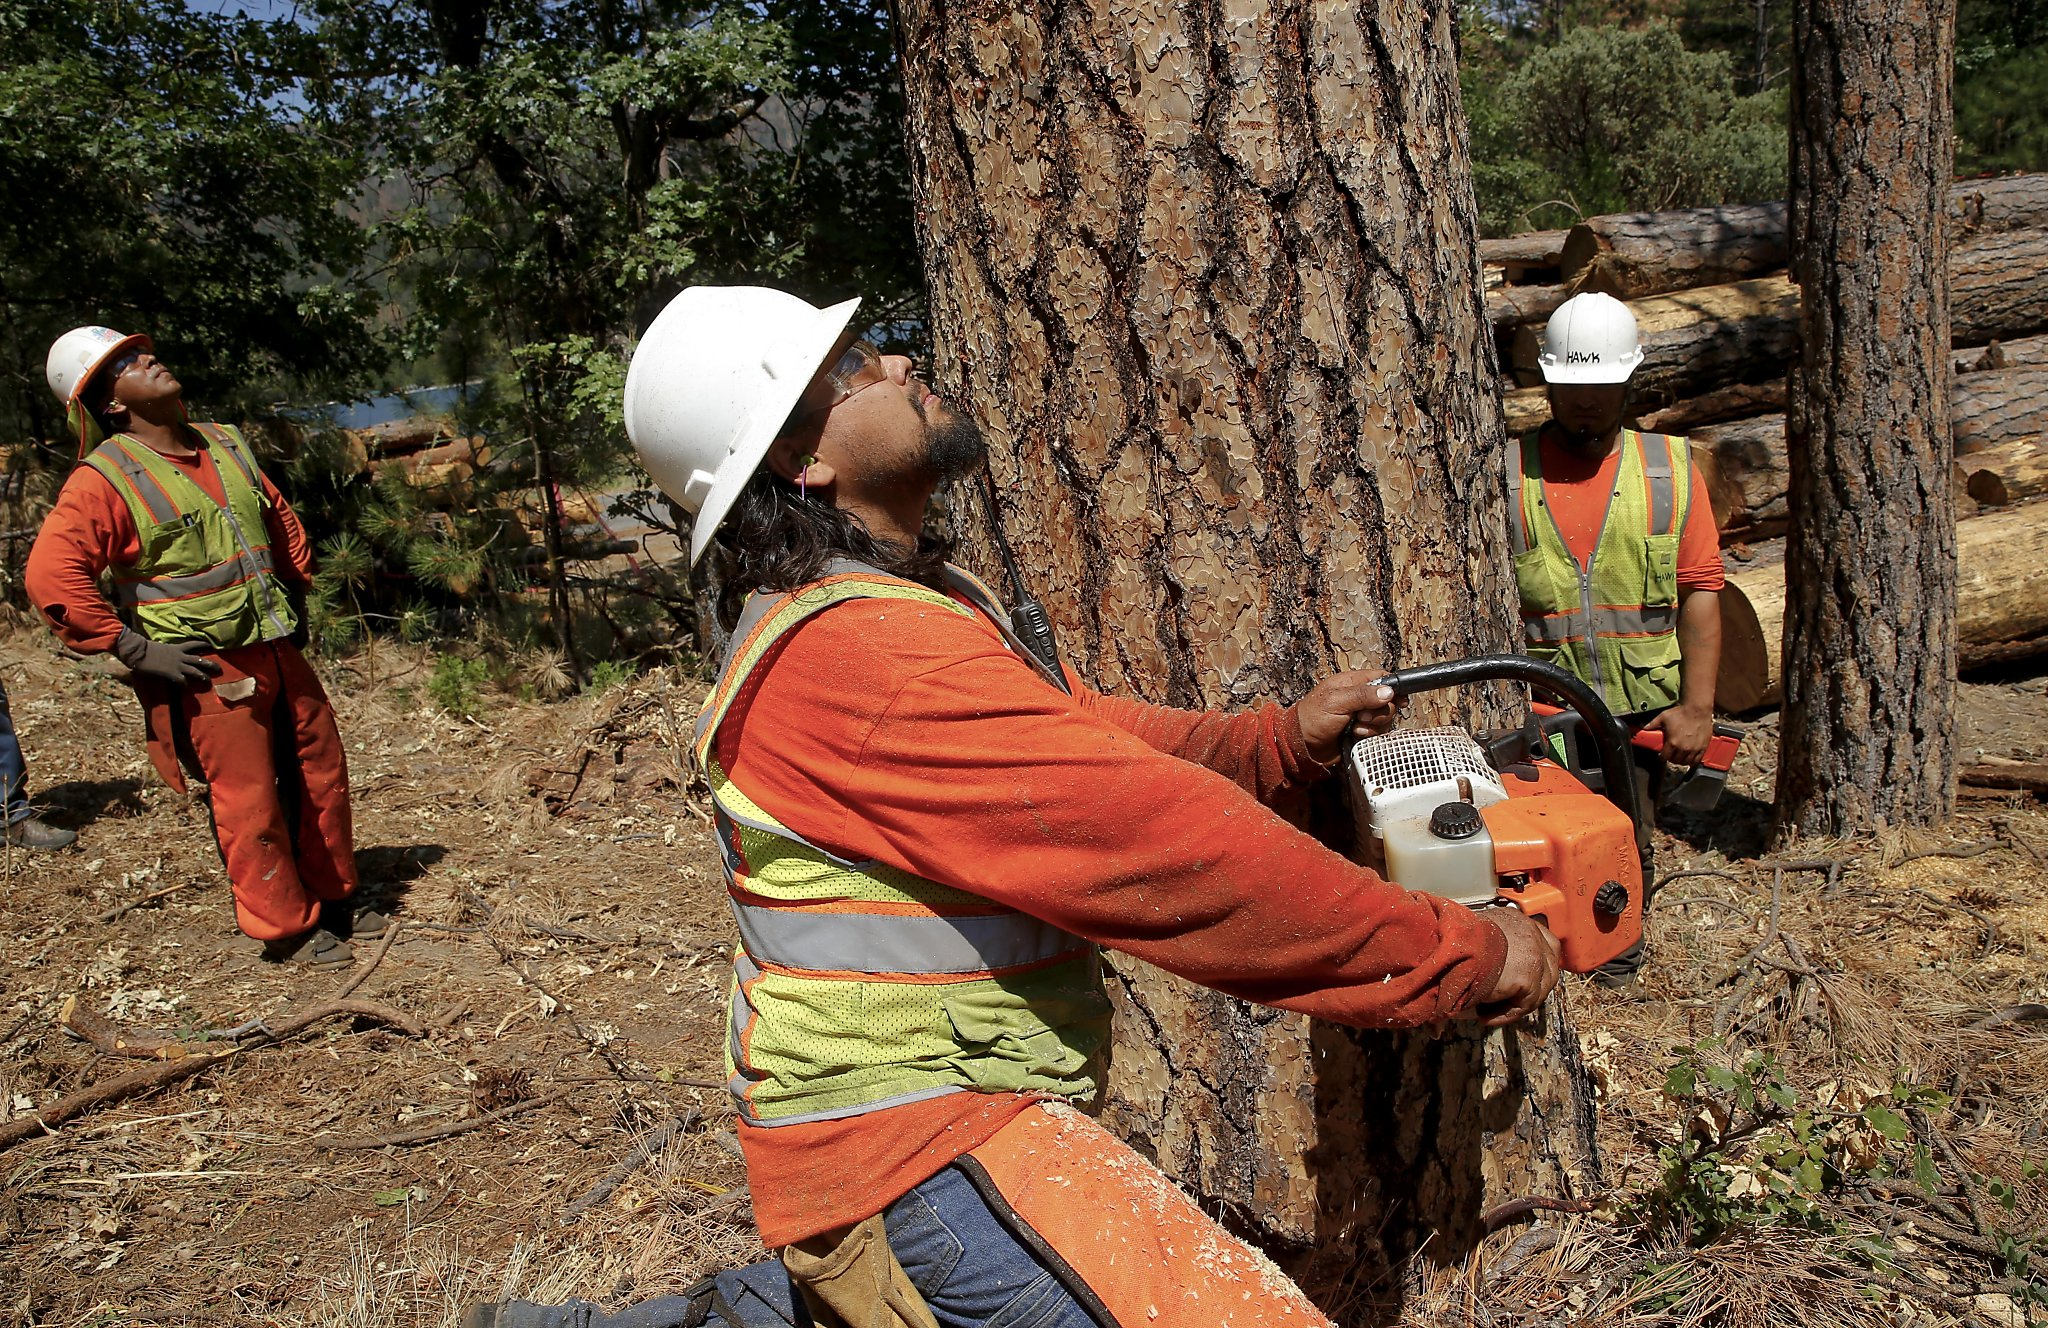 Wallpaper Falling Down California Has 66 Million Dead Trees But Nowhere To Put